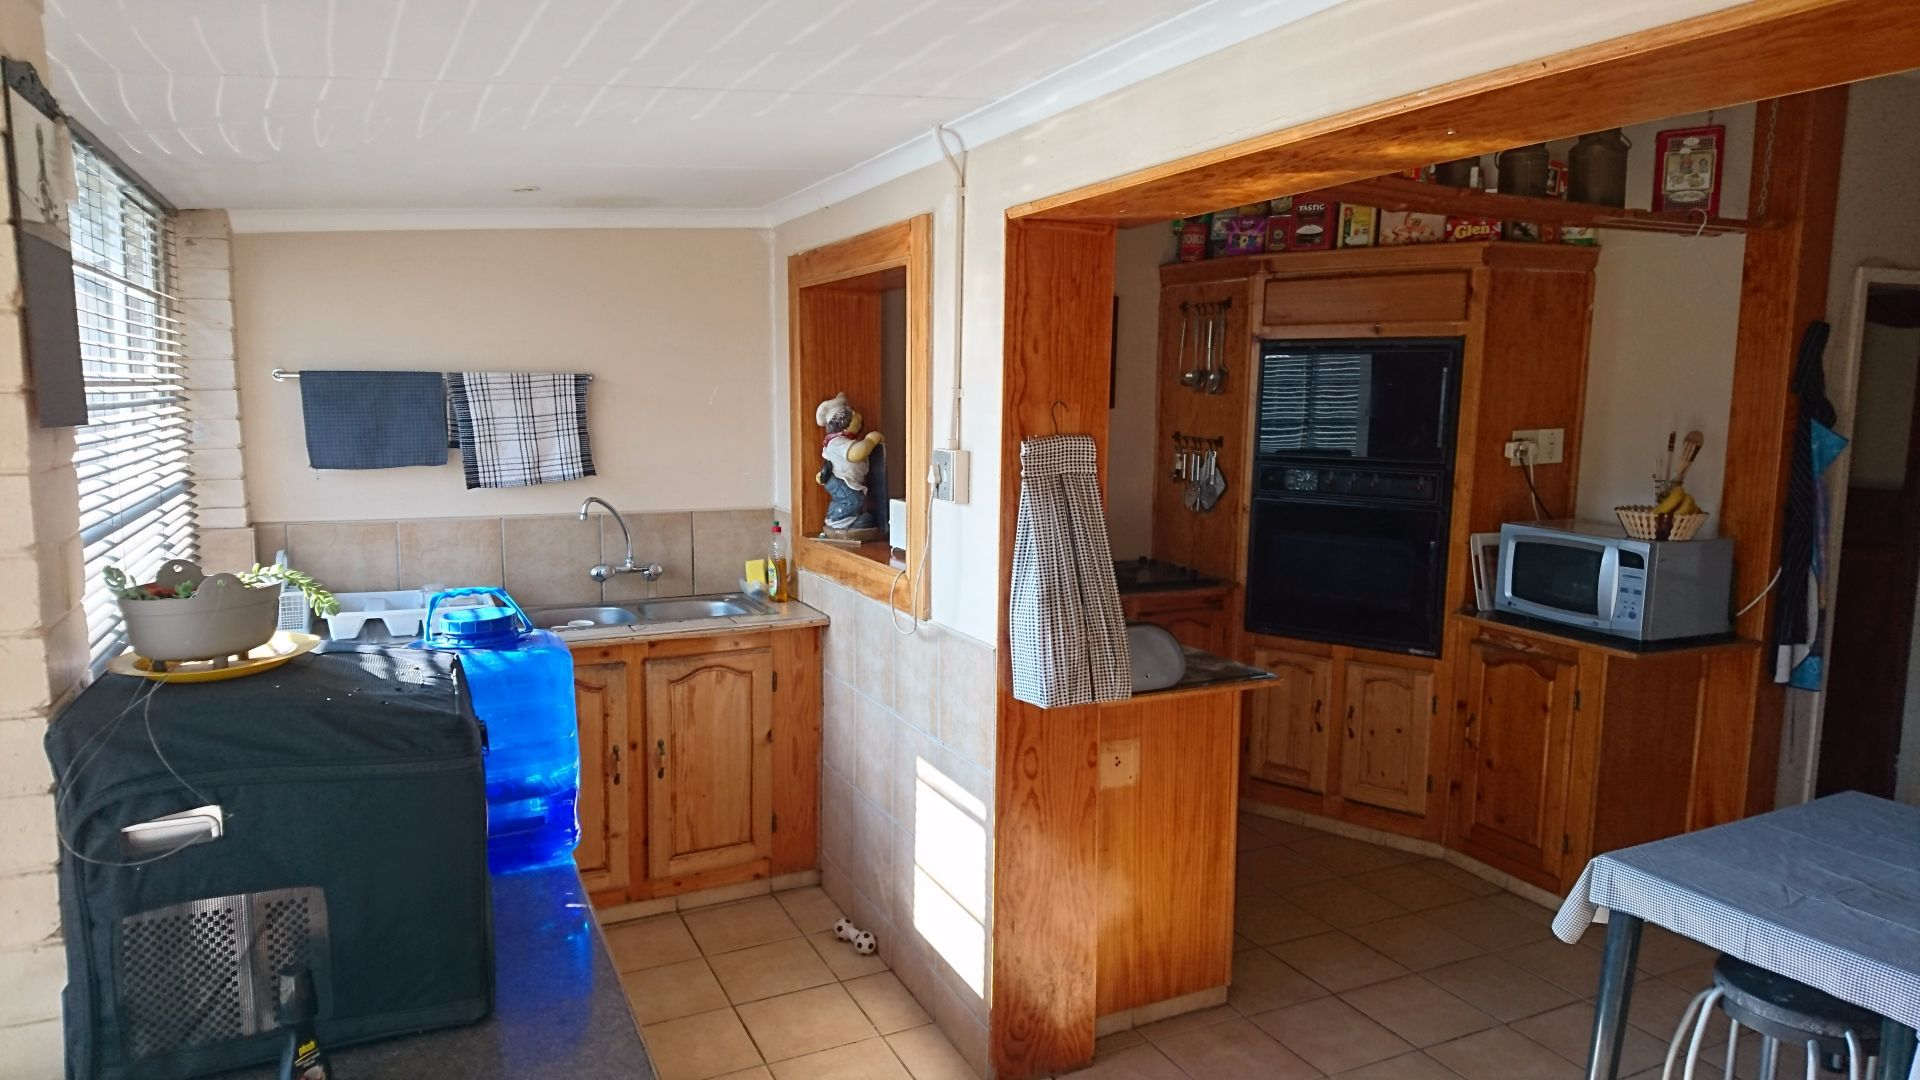 Suid Dorp property for sale. Ref No: 13504335. Picture no 17